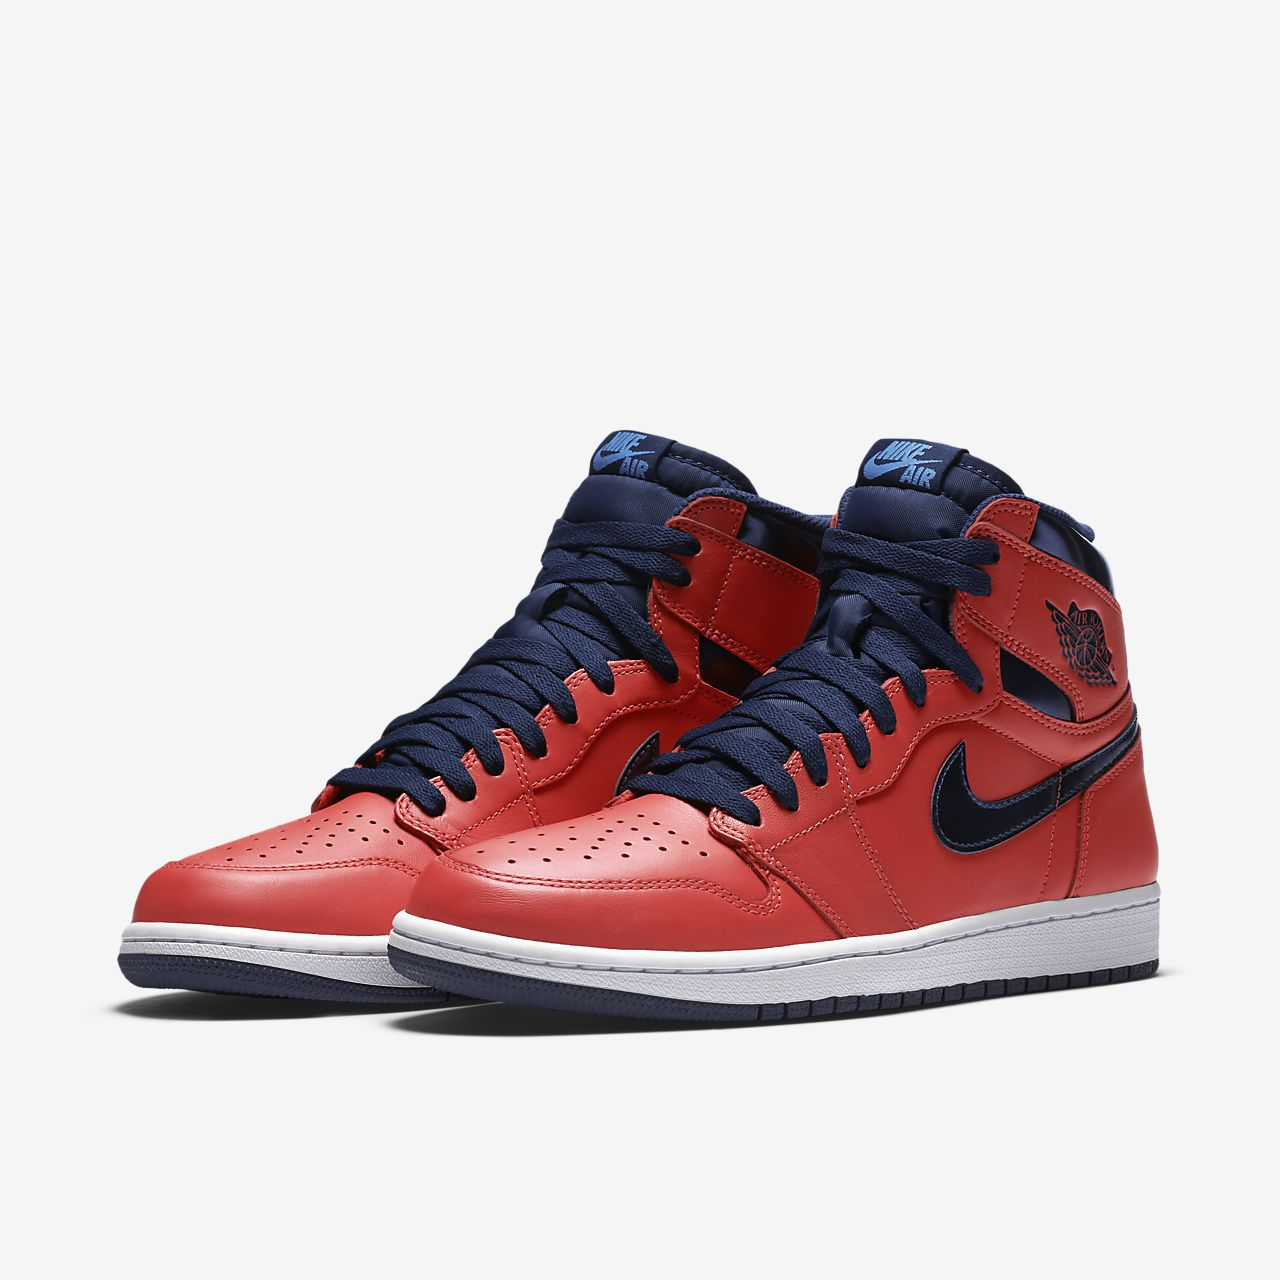 2df8127616d5 Air Jordan 1 Retro High OG Shoe. Nike.com GB